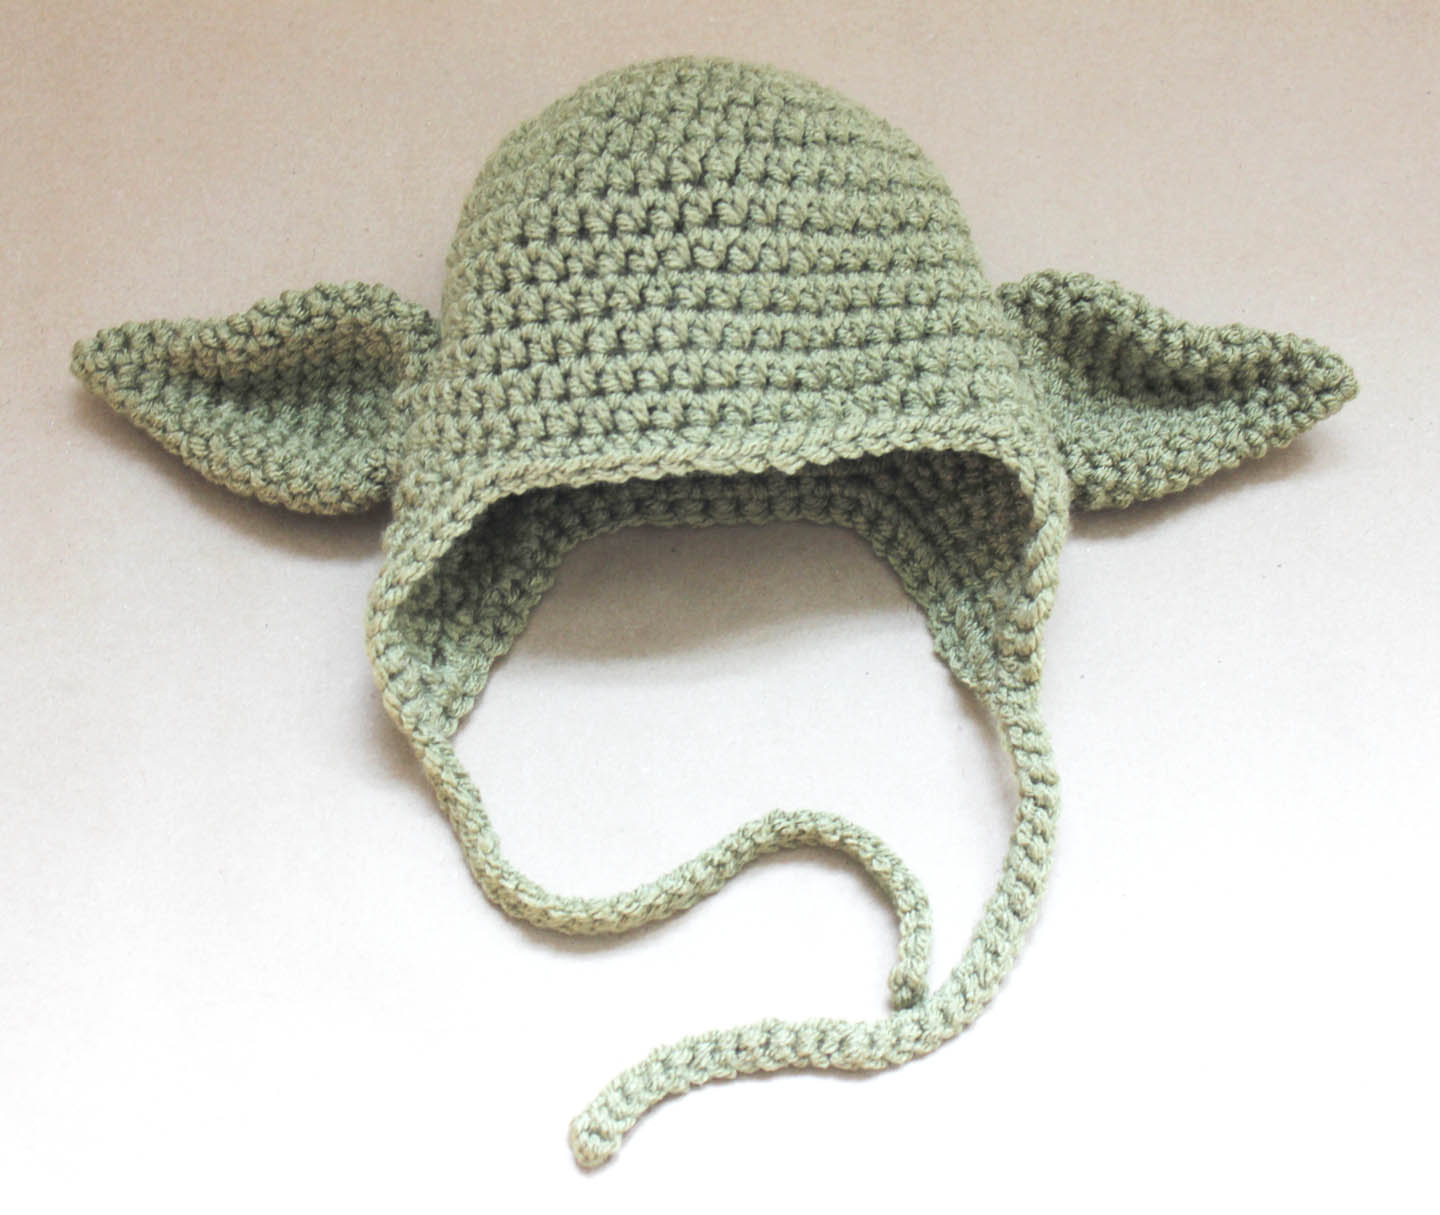 Crochet Yoda Pattern : Crochet Yoda Hat - Repeat Crafter Me